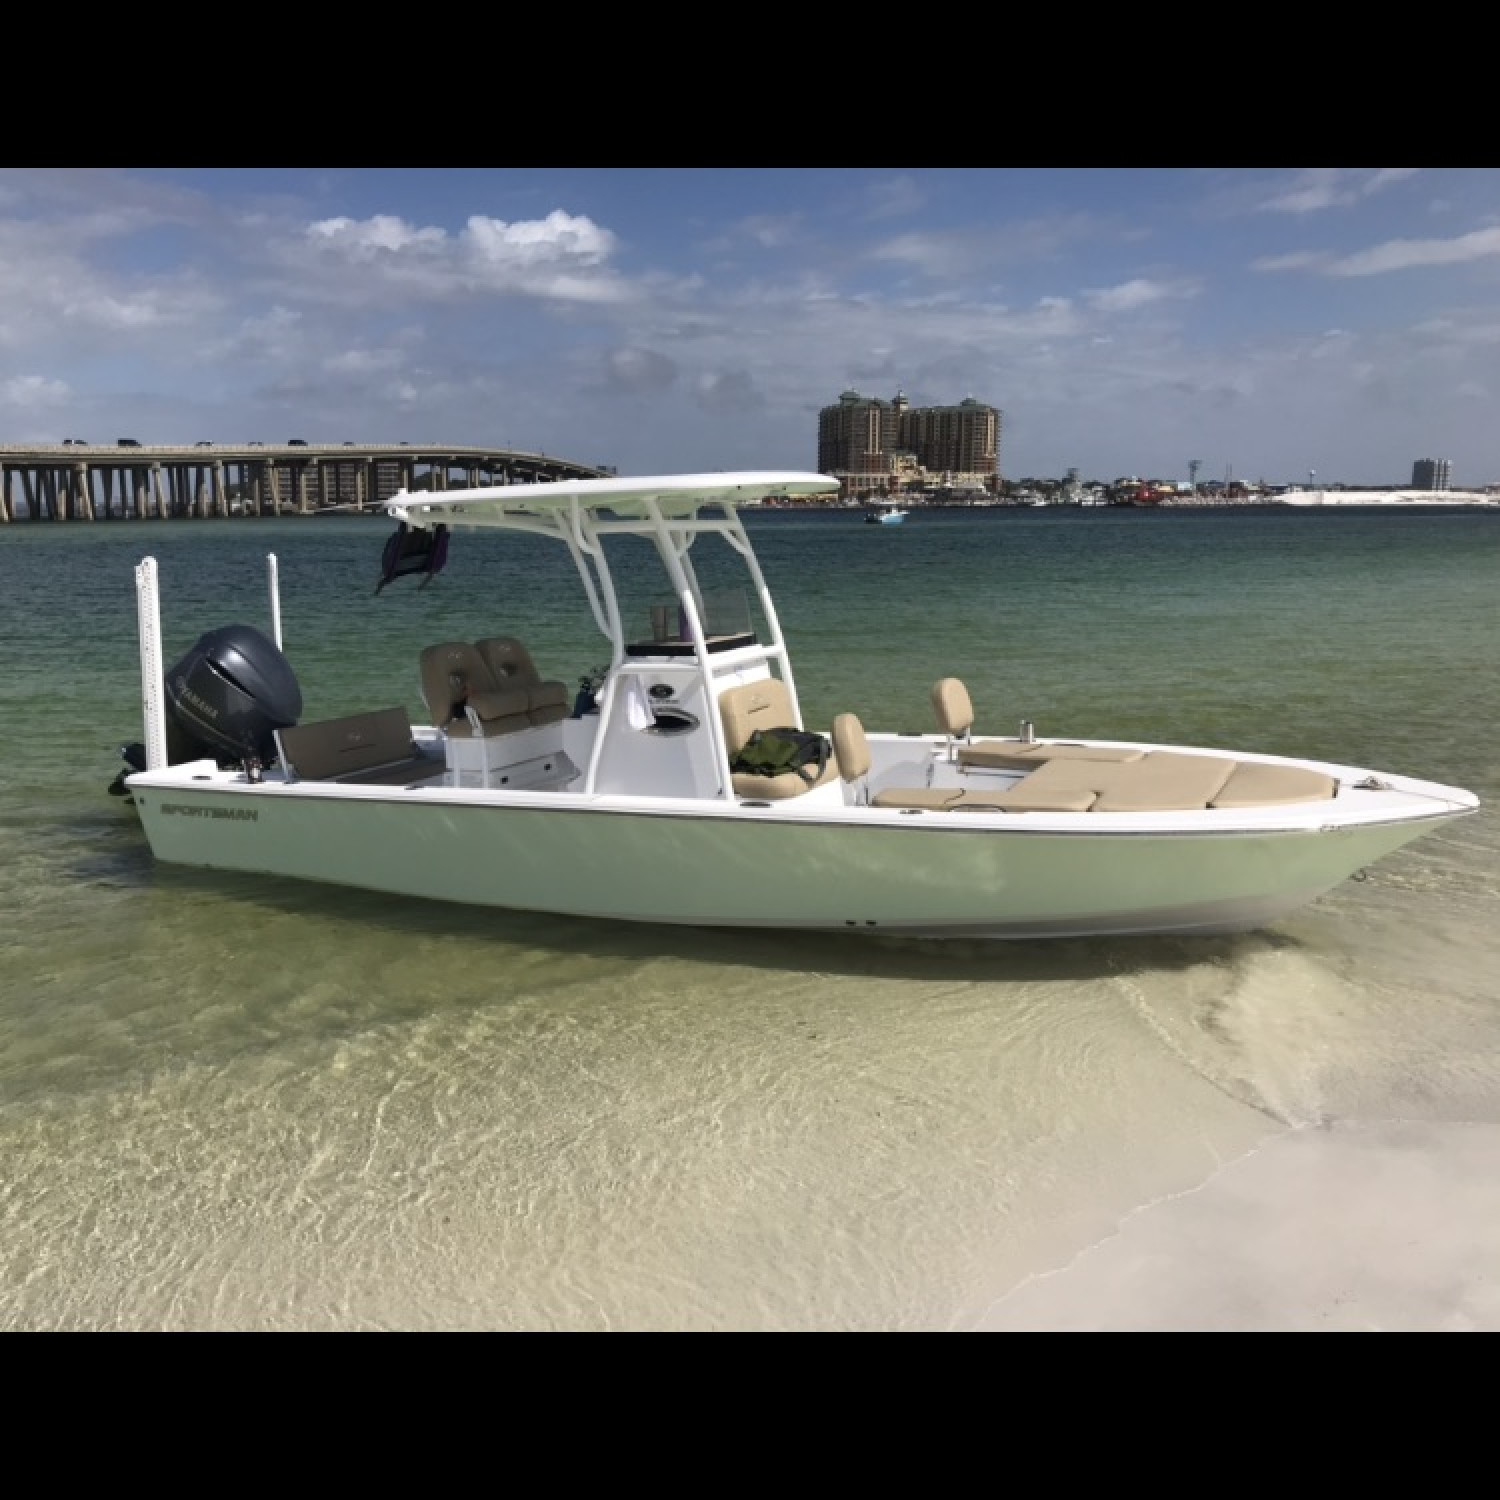 Title: Destin 247 Sportsman - On board their Sportsman Masters 247 Bay Boat - Location: Destin FL. Participating in the Photo Contest #SportsmanApril2018